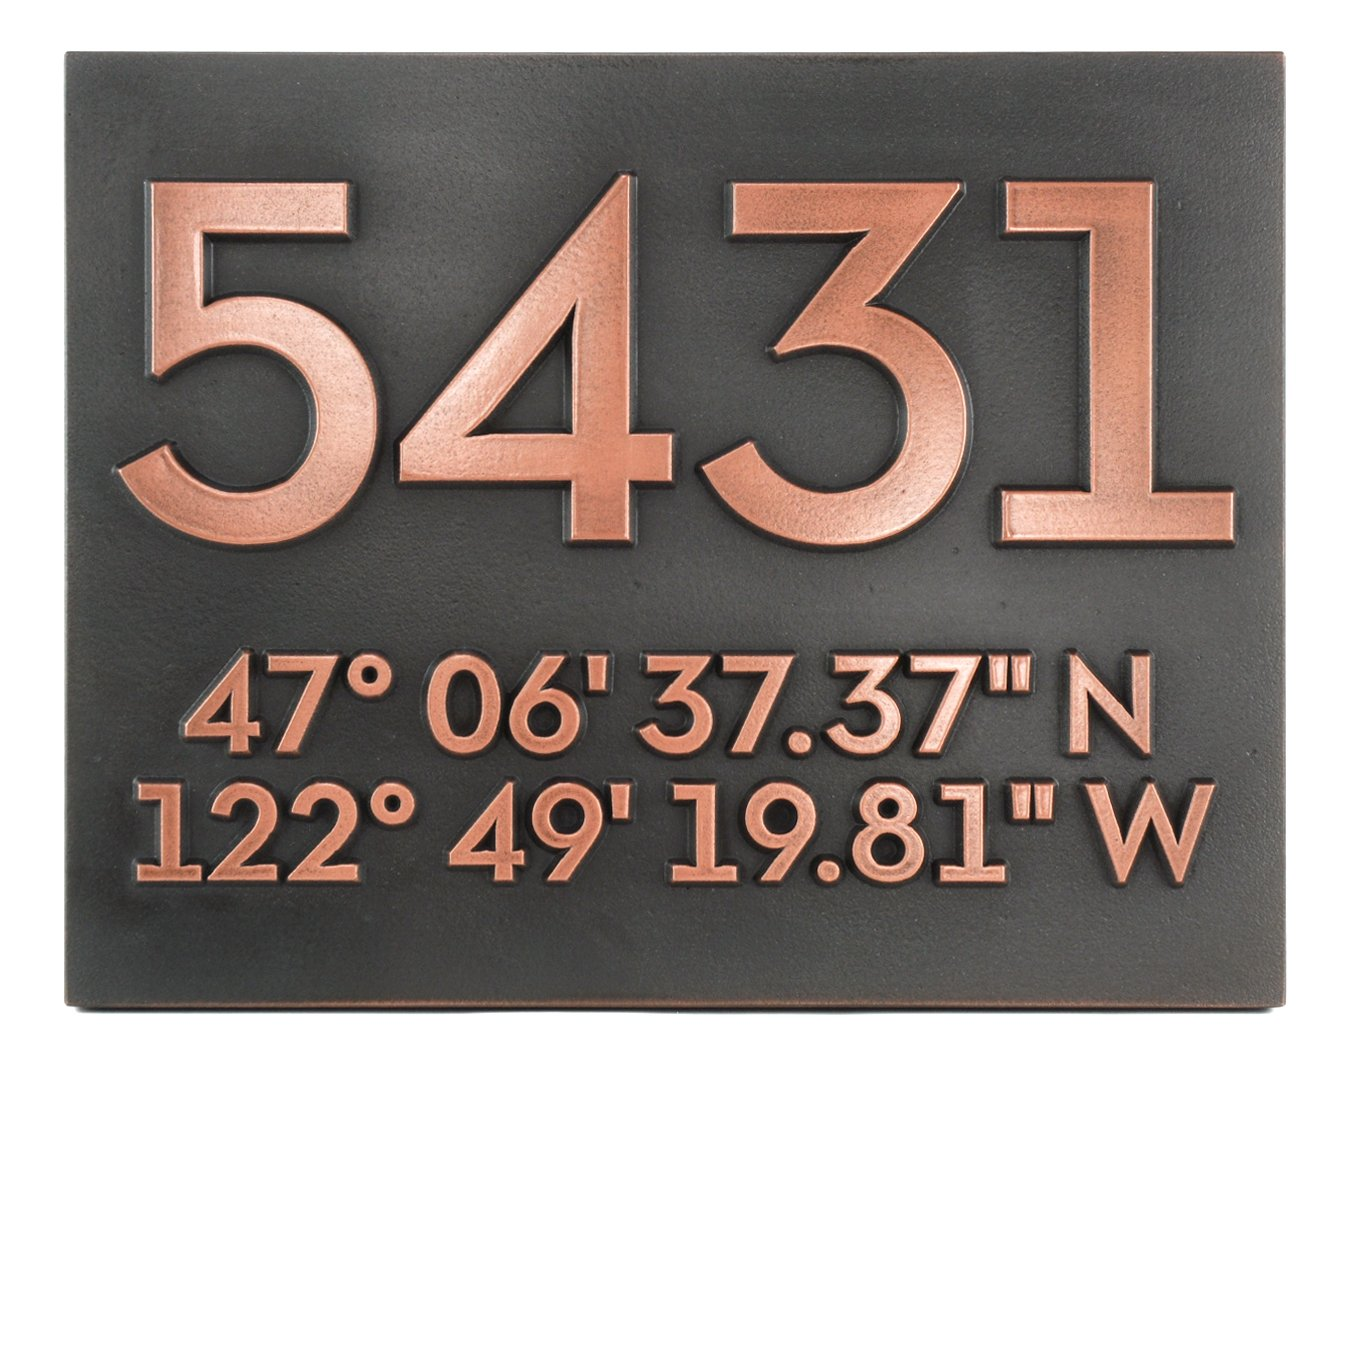 Latitude Longitude Address Number Plaque 14x11 - Raised Copper Metal Coated Sign by Atlas Signs and Plaques